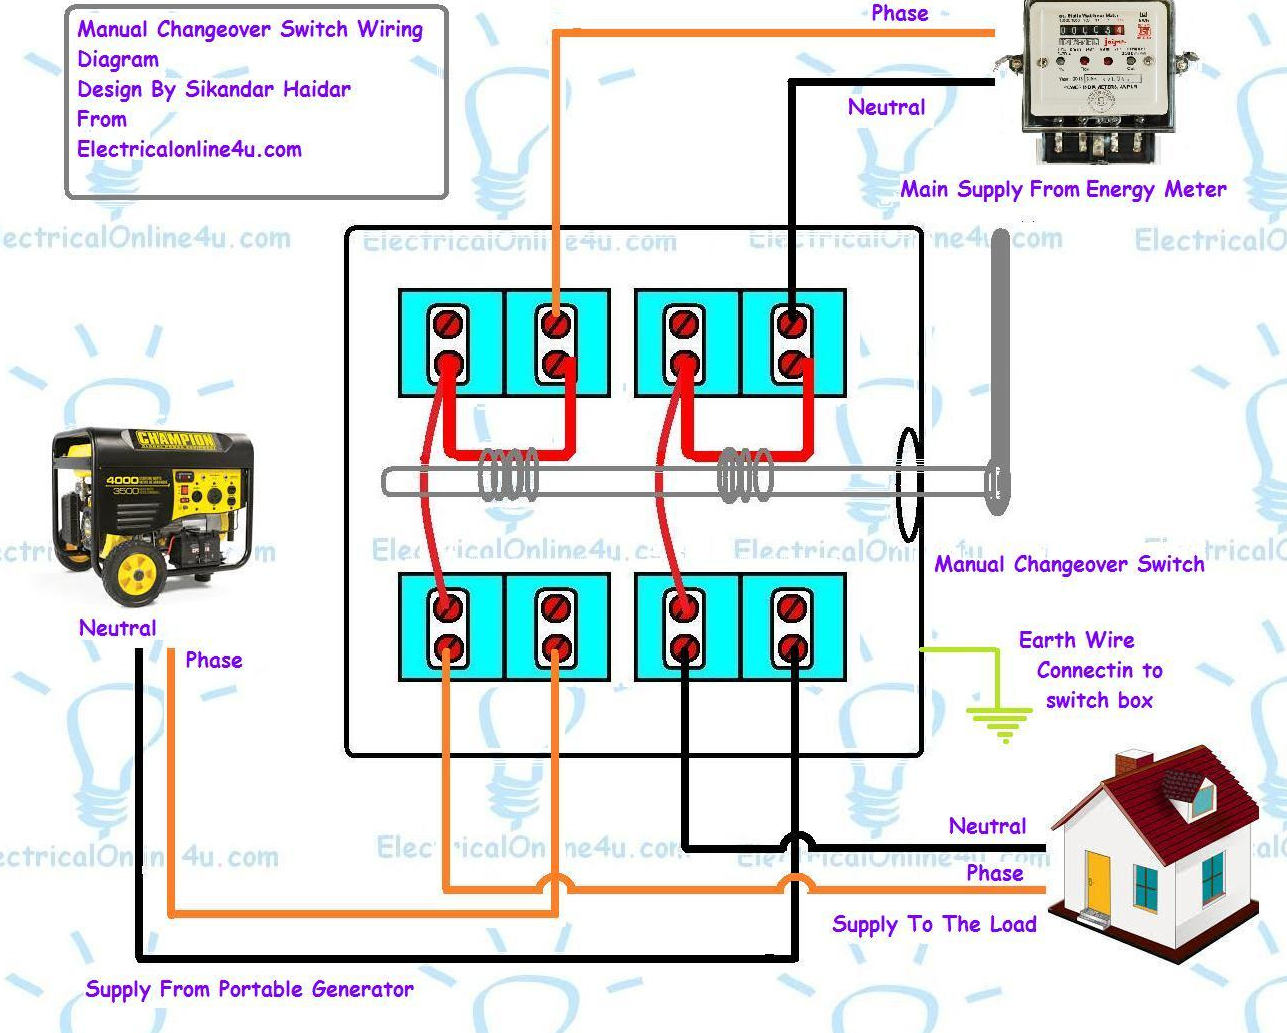 Manual Changeover Switch Wiring Diagram For Portable Generator Transfer Switch Electricity Generator Transfer Switch